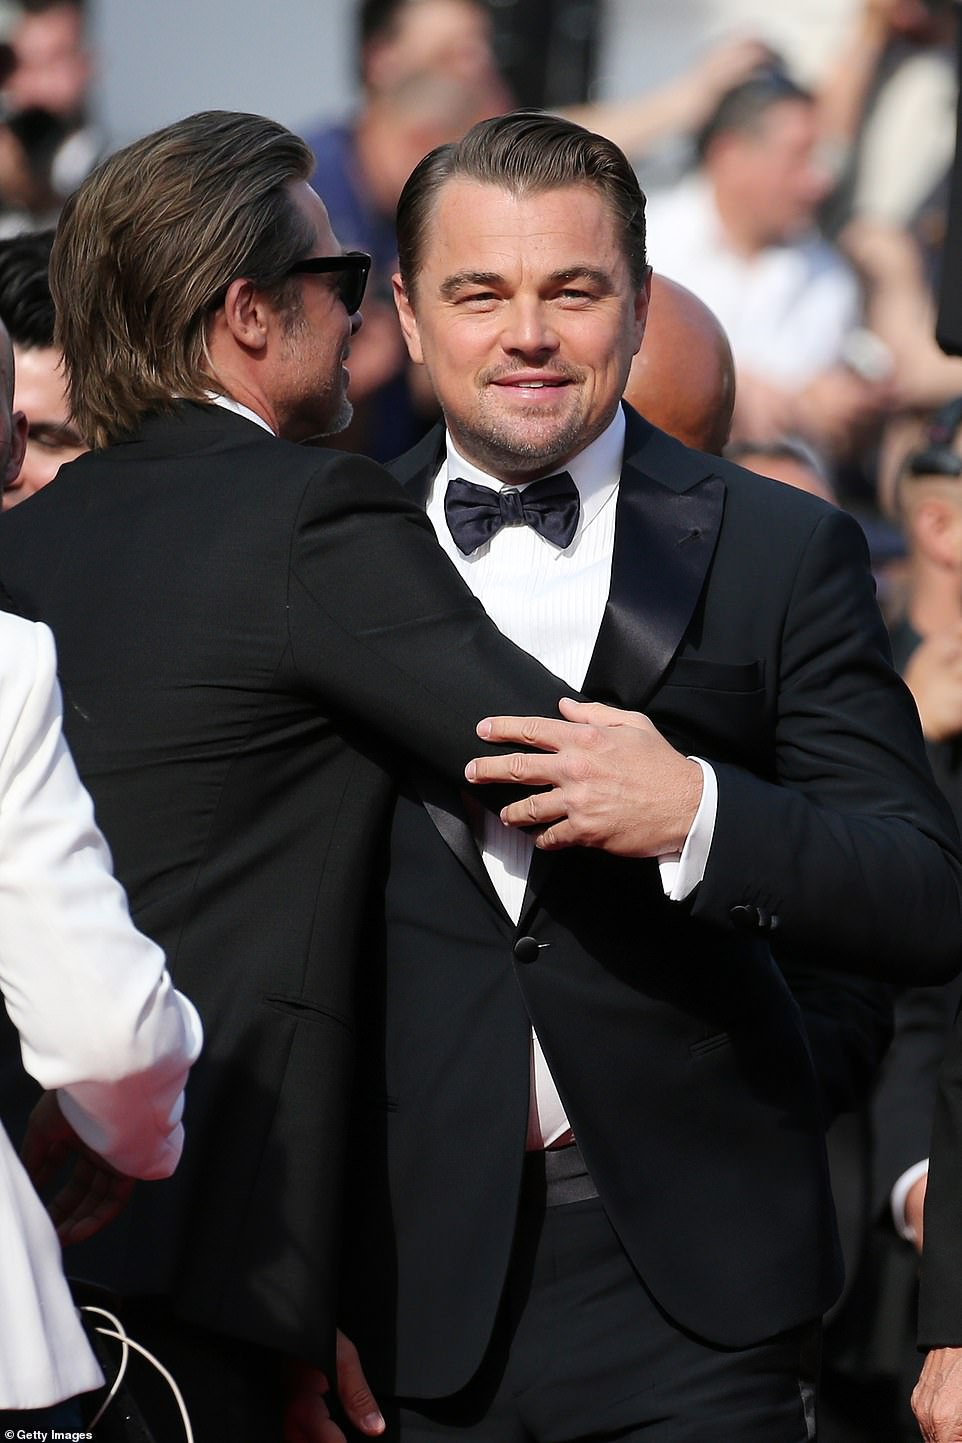 Happy days! The stars of the show Brad Pitt and Leonardo DiCaprio were larking around on the carpet. They play Rick Dalton and his stunt double Cliff Booth, as they revisit a simpler time in tinsel town